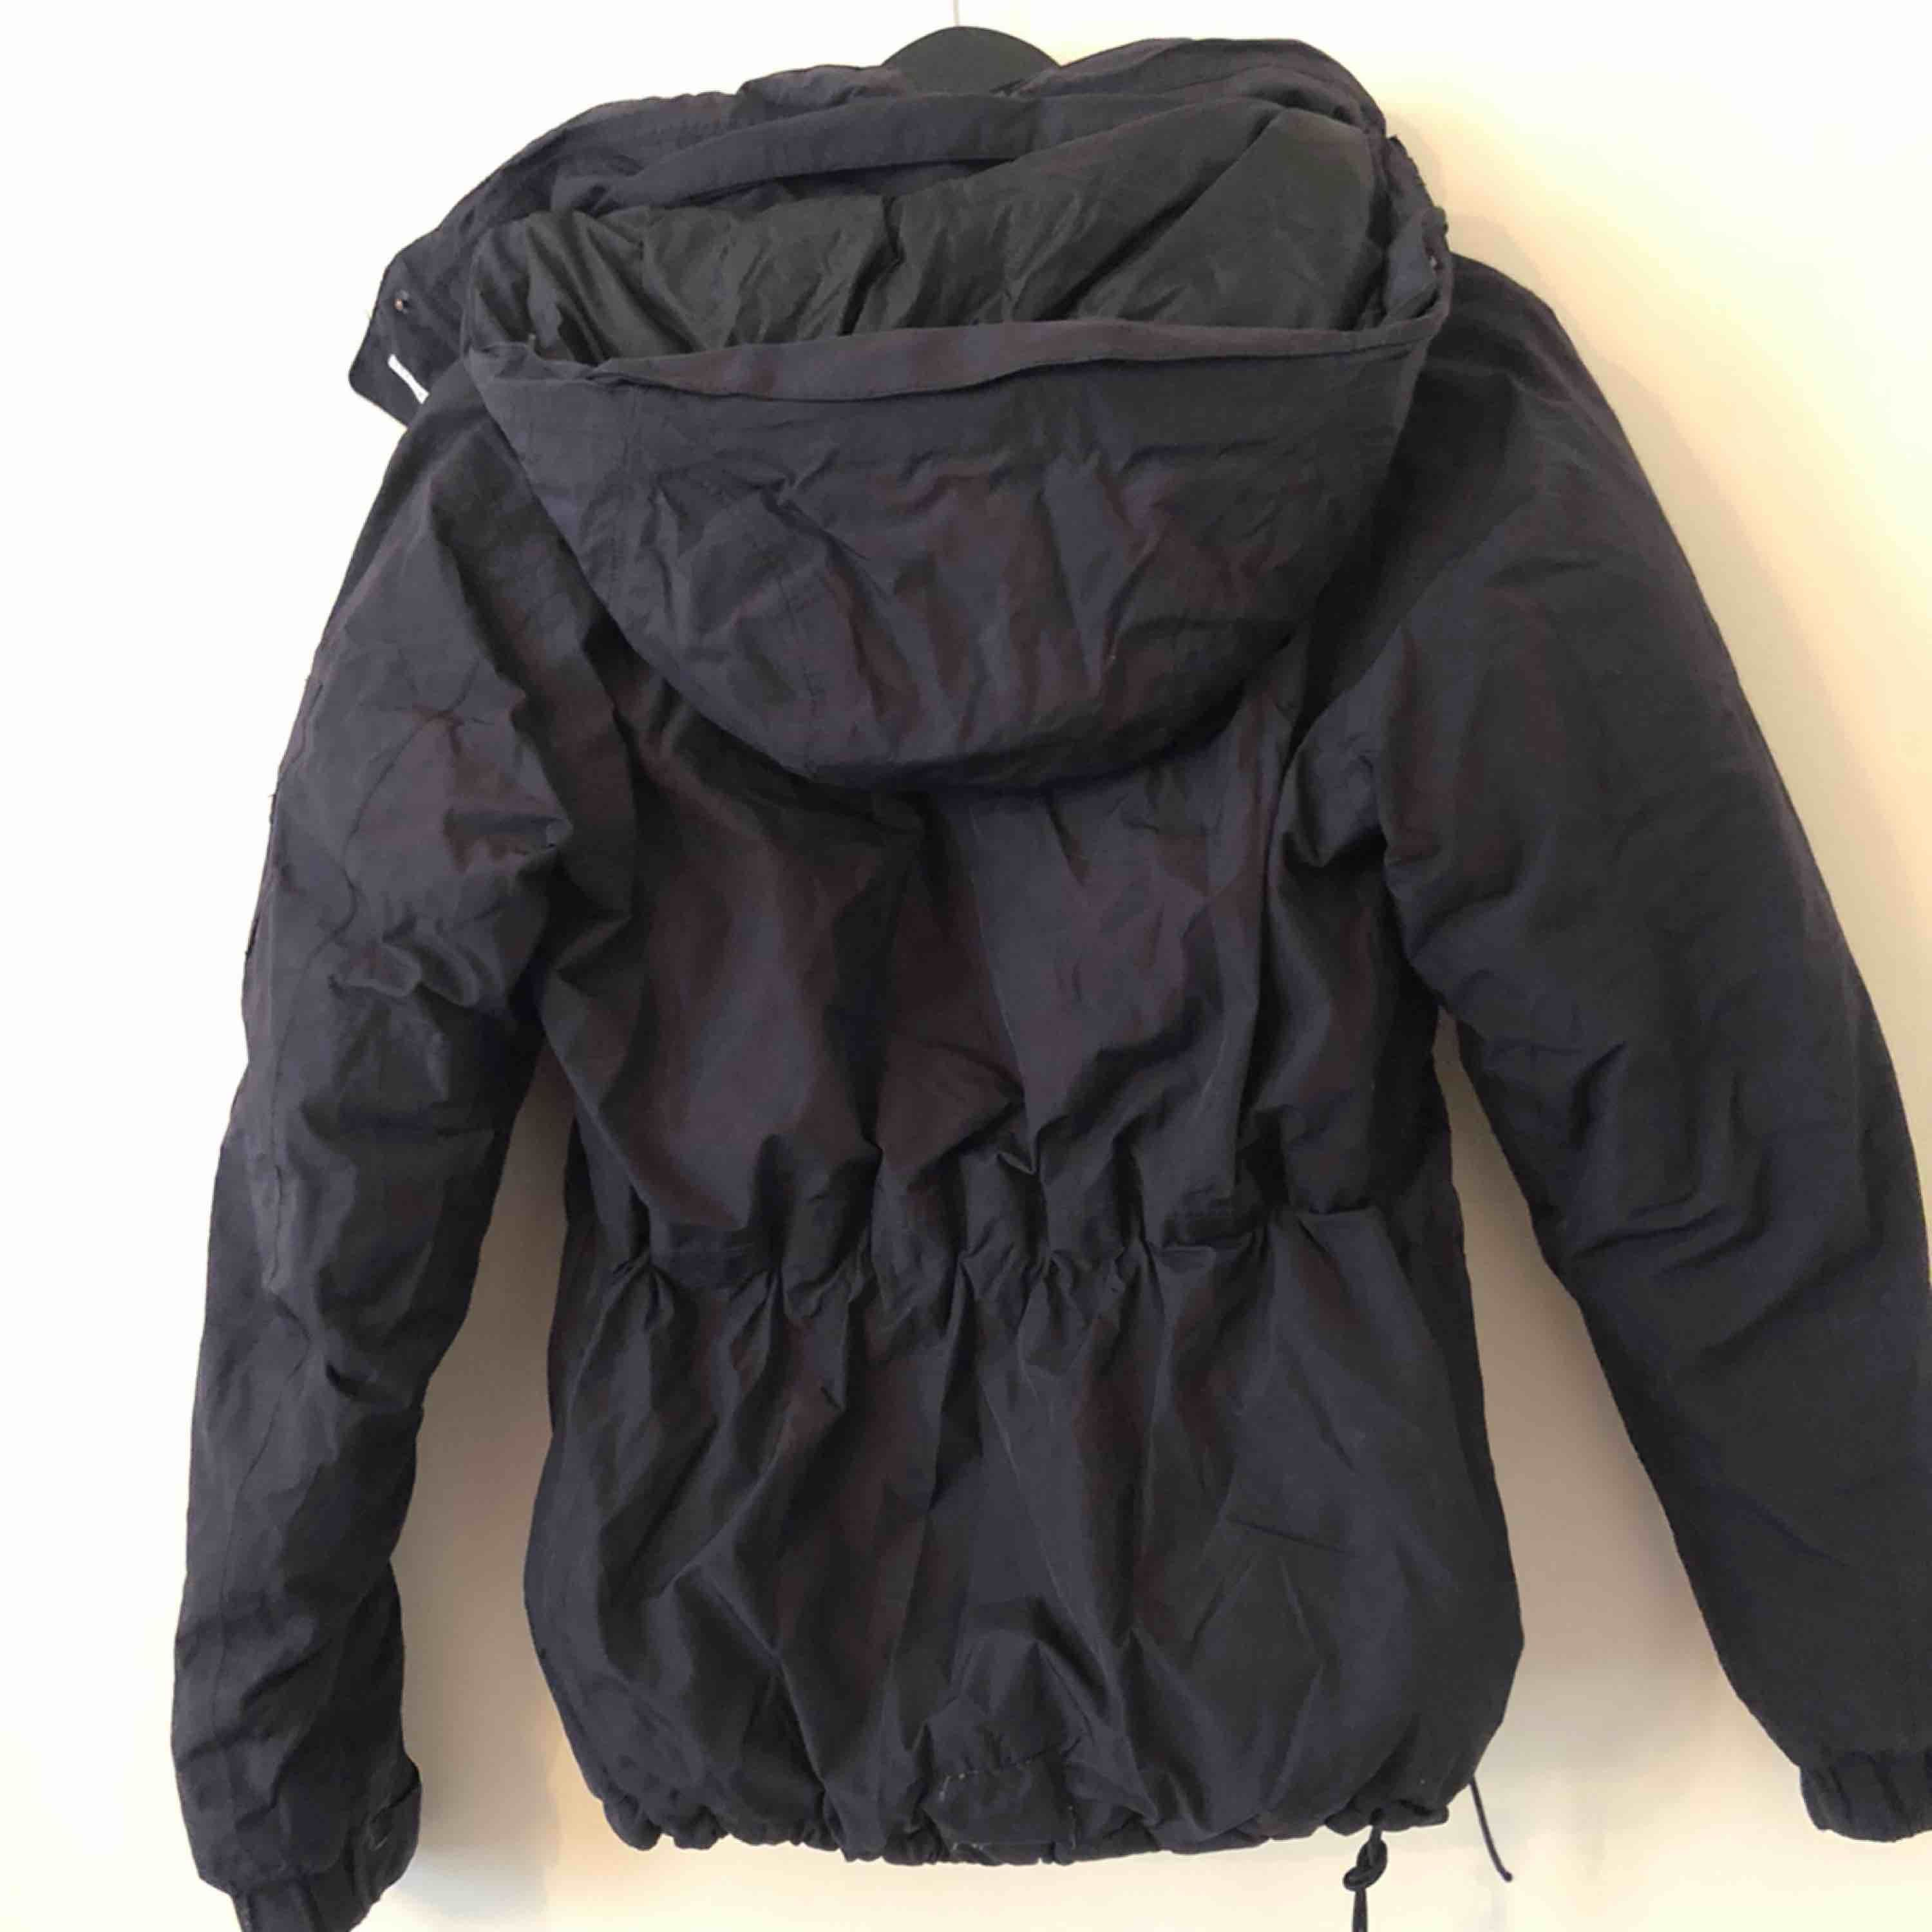 Everest winter Jacket. In Black with Hood. Excellent condition. Size 34 . Jackor.